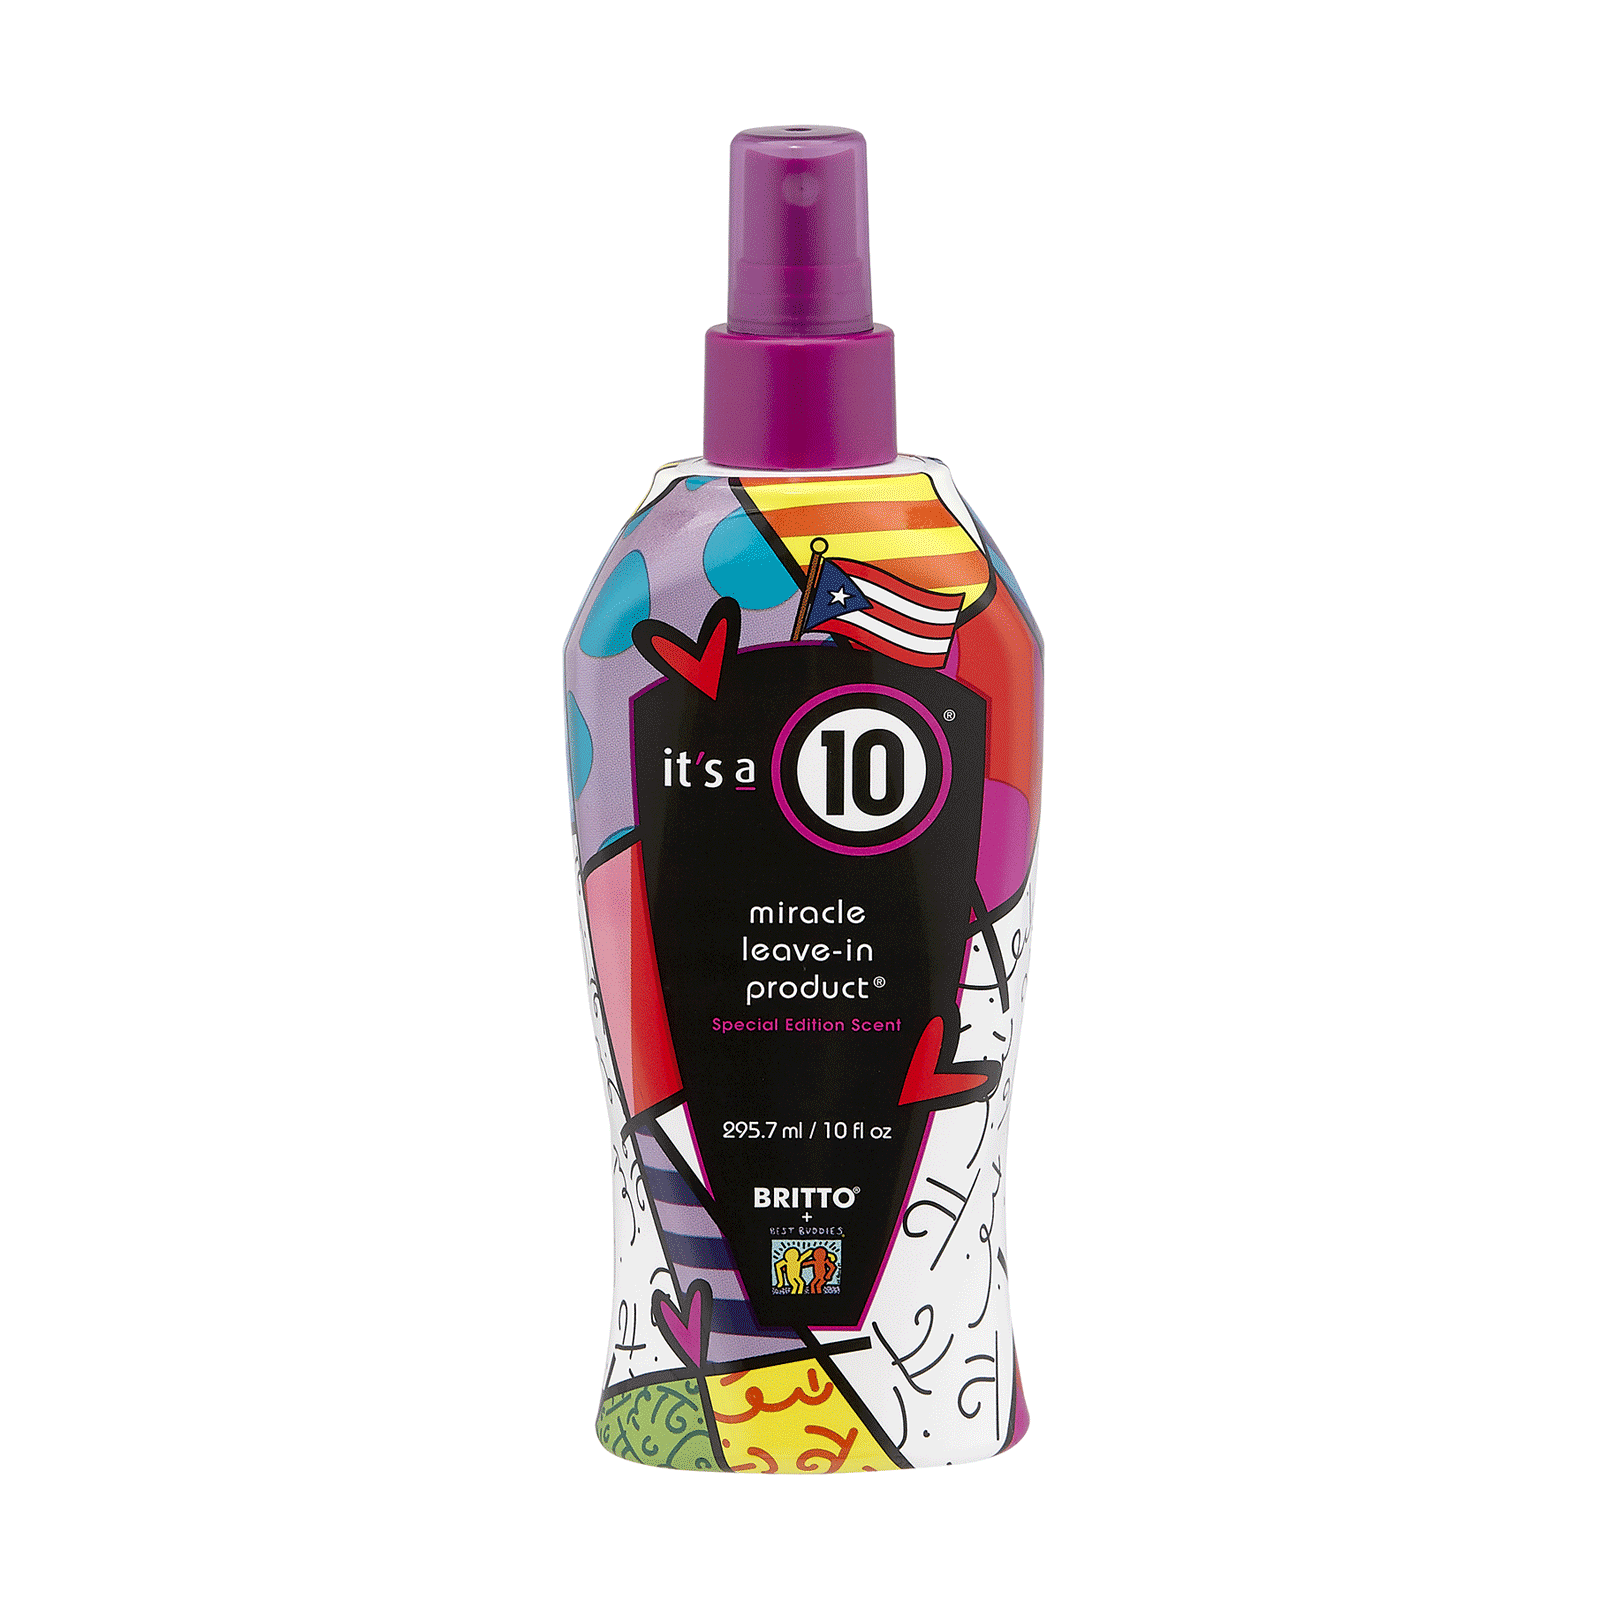 Limited Edition Britto Miracle Leave-In Conditioner